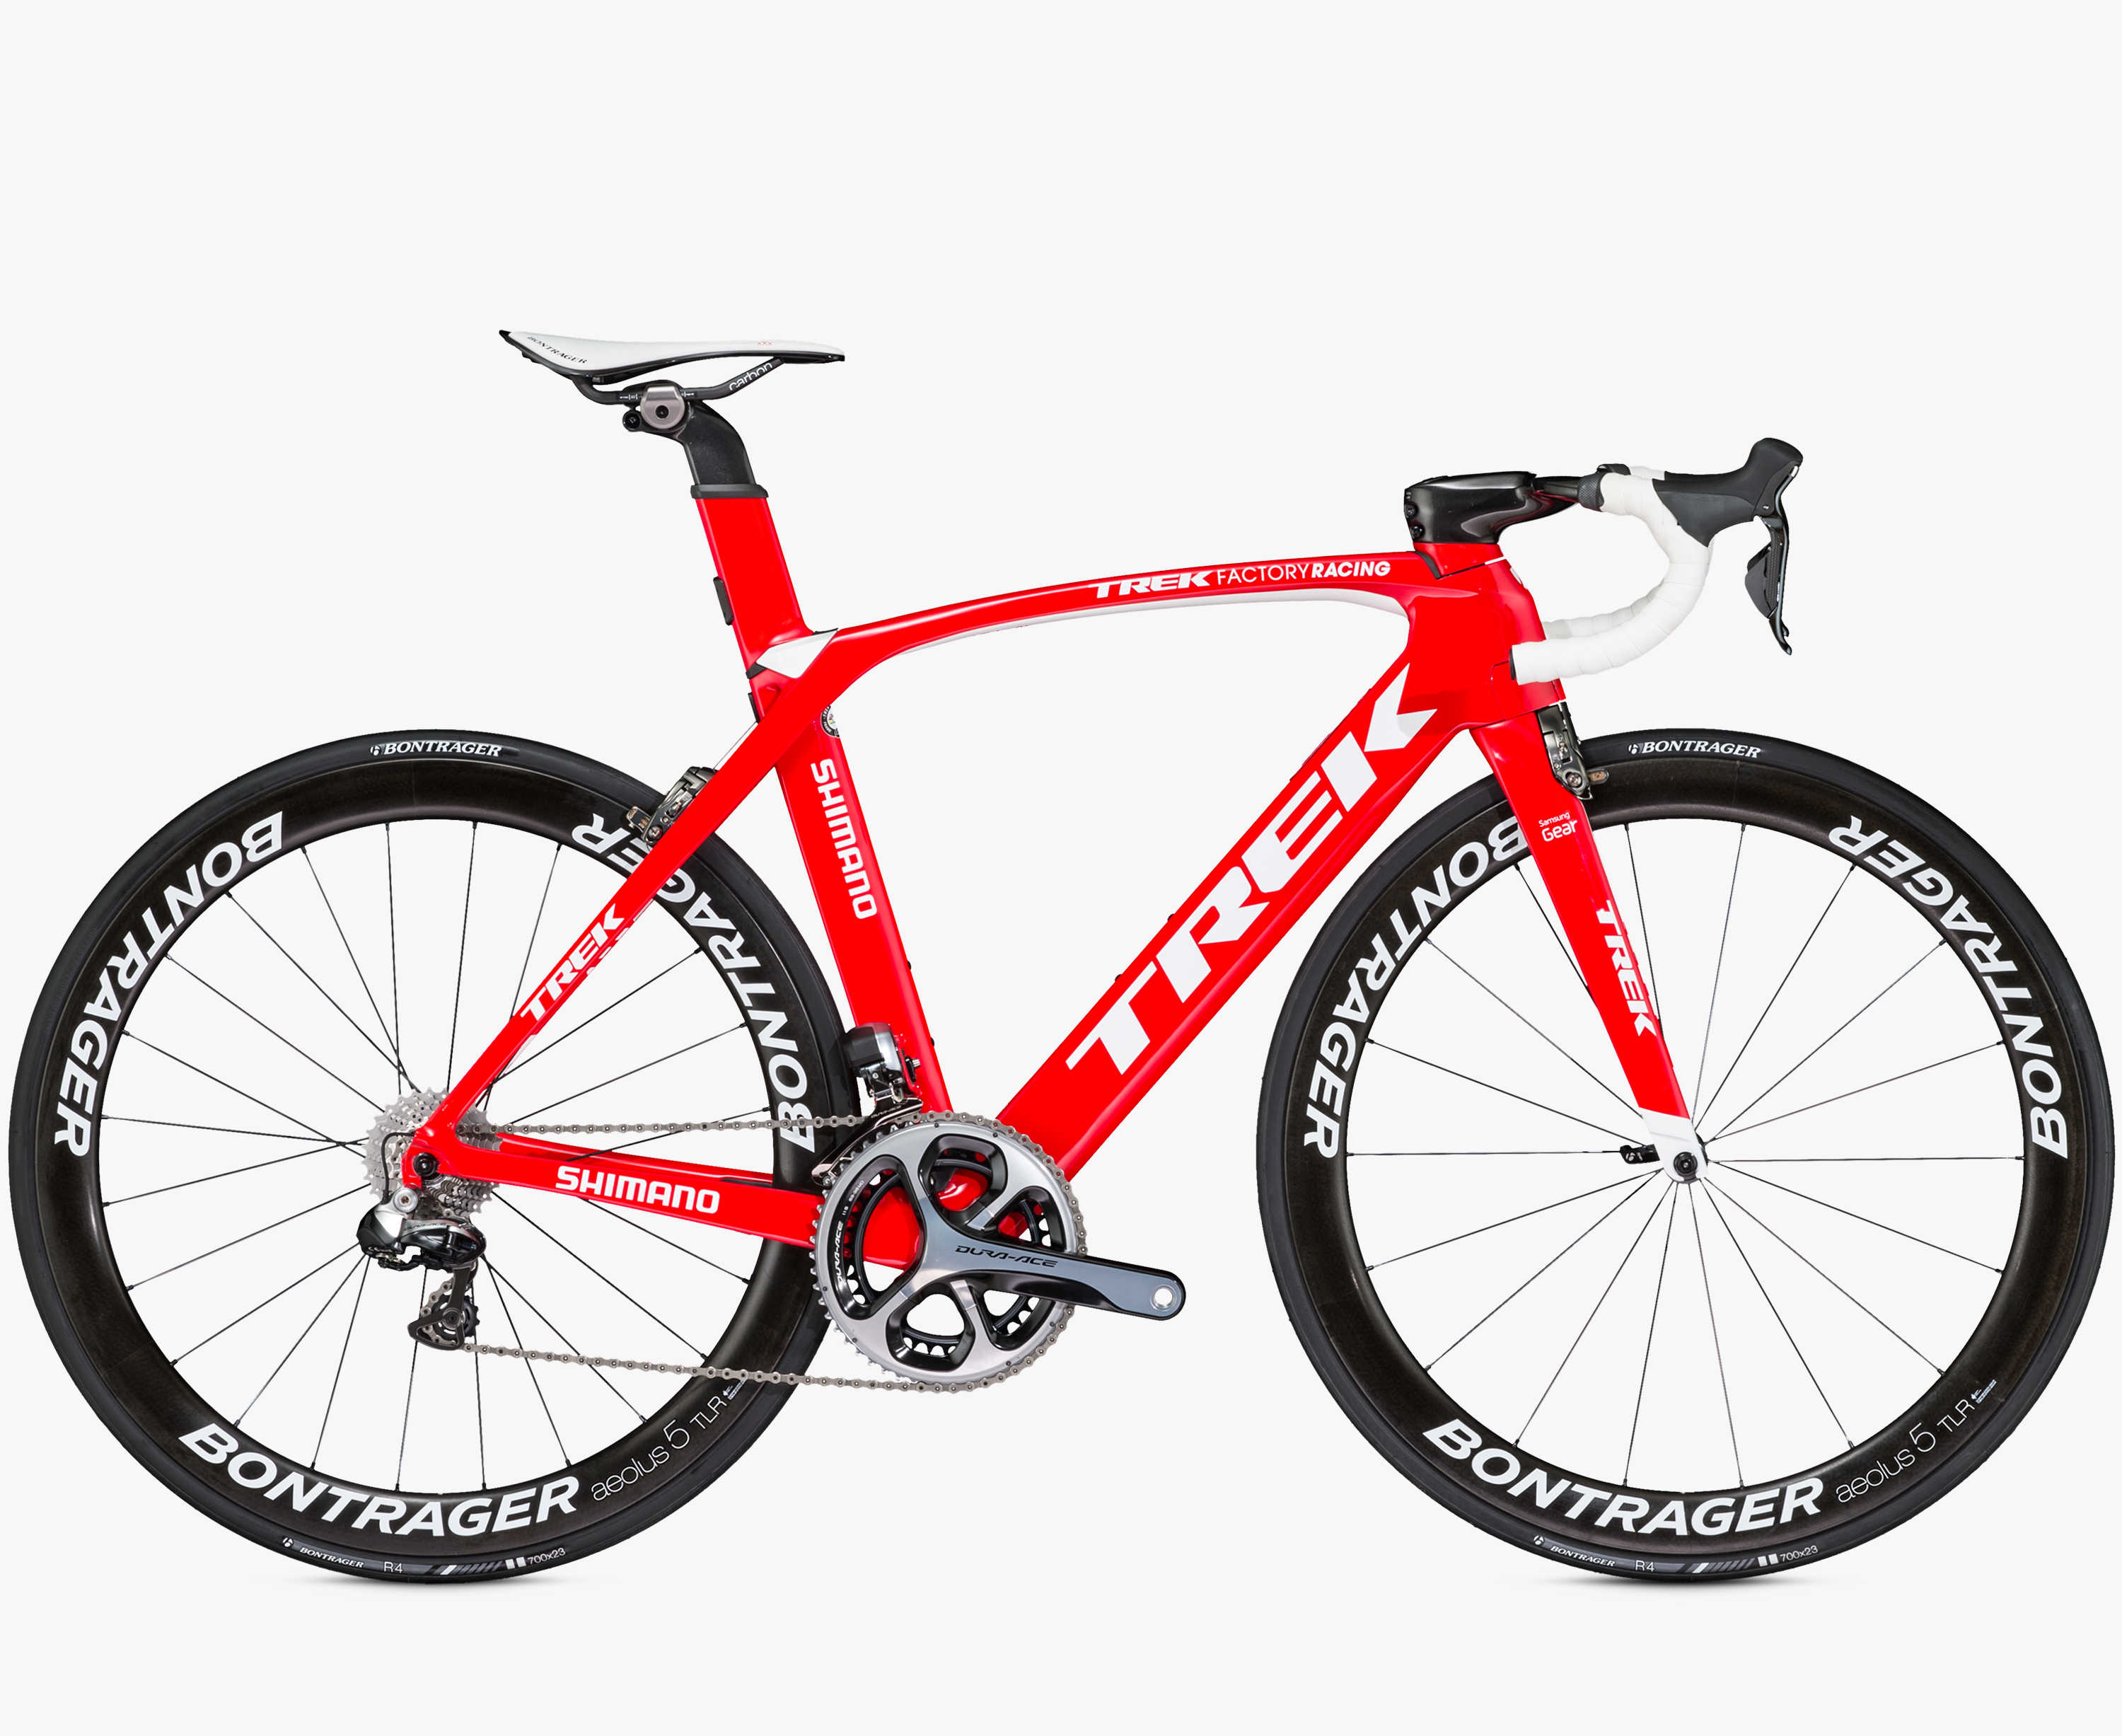 http://trek.scene7.com/is/image/TrekBicycleProducts/1476000_2016_A_1_Madone_Race_Shop_Limited_H1?wid=3000&hei=2454&fmt=jpg&qlt=50,1&op_usm=0,0,0,0&iccEmbed=0&cache=on,on&bgc=247,247,247